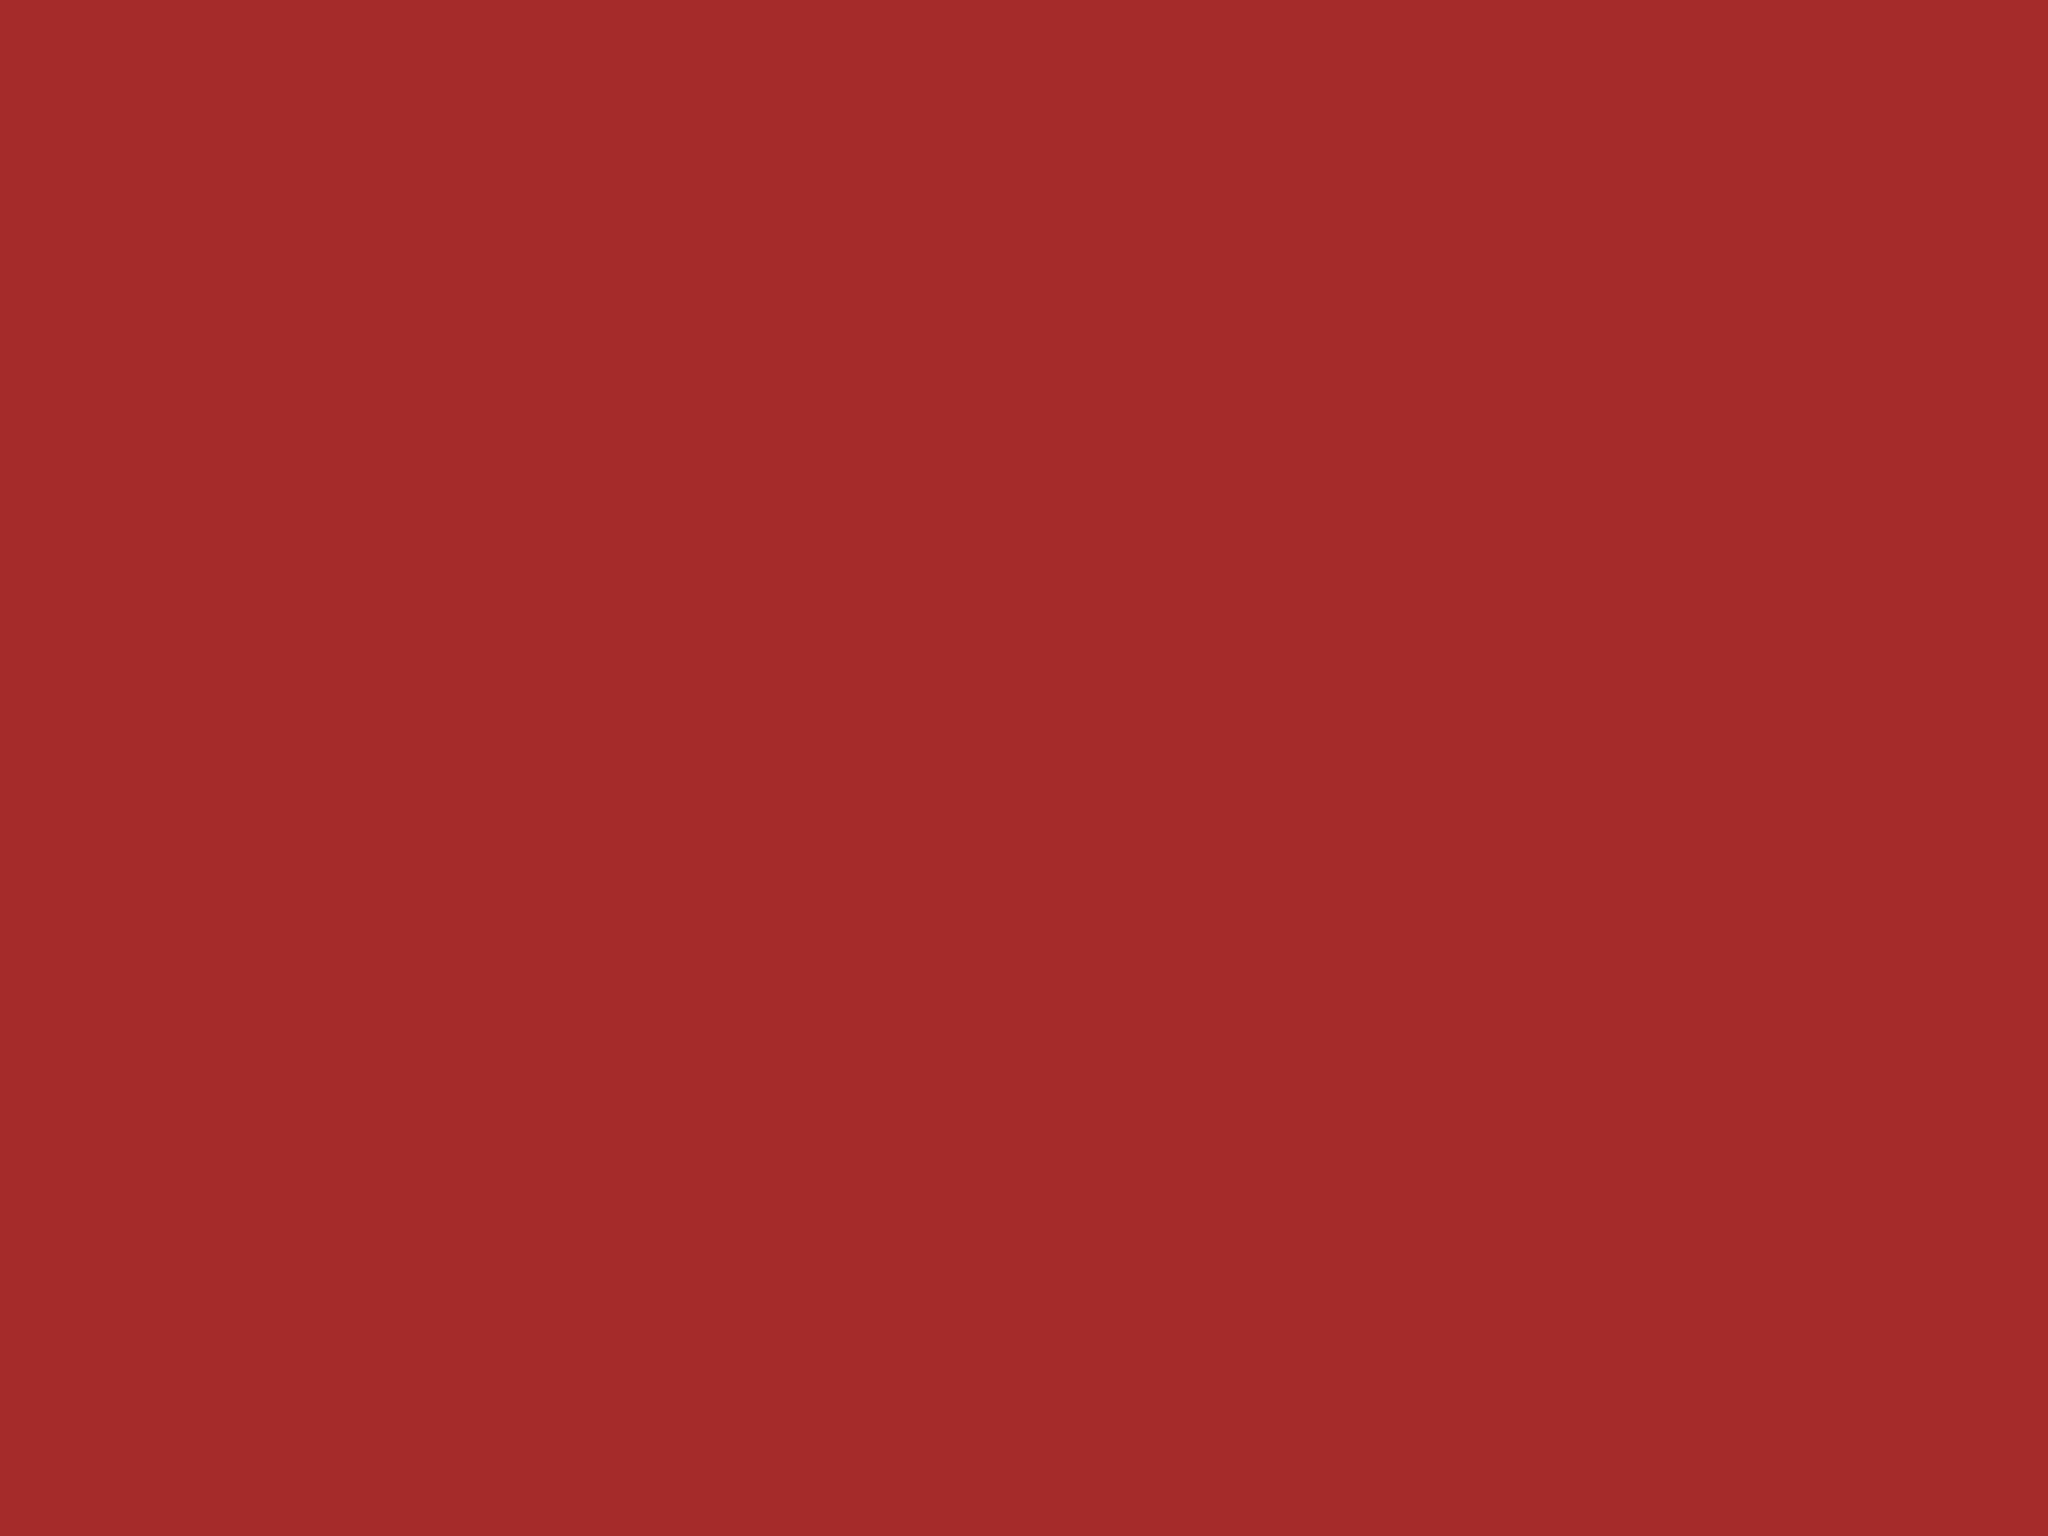 2048x1536 Red-brown Solid Color Background